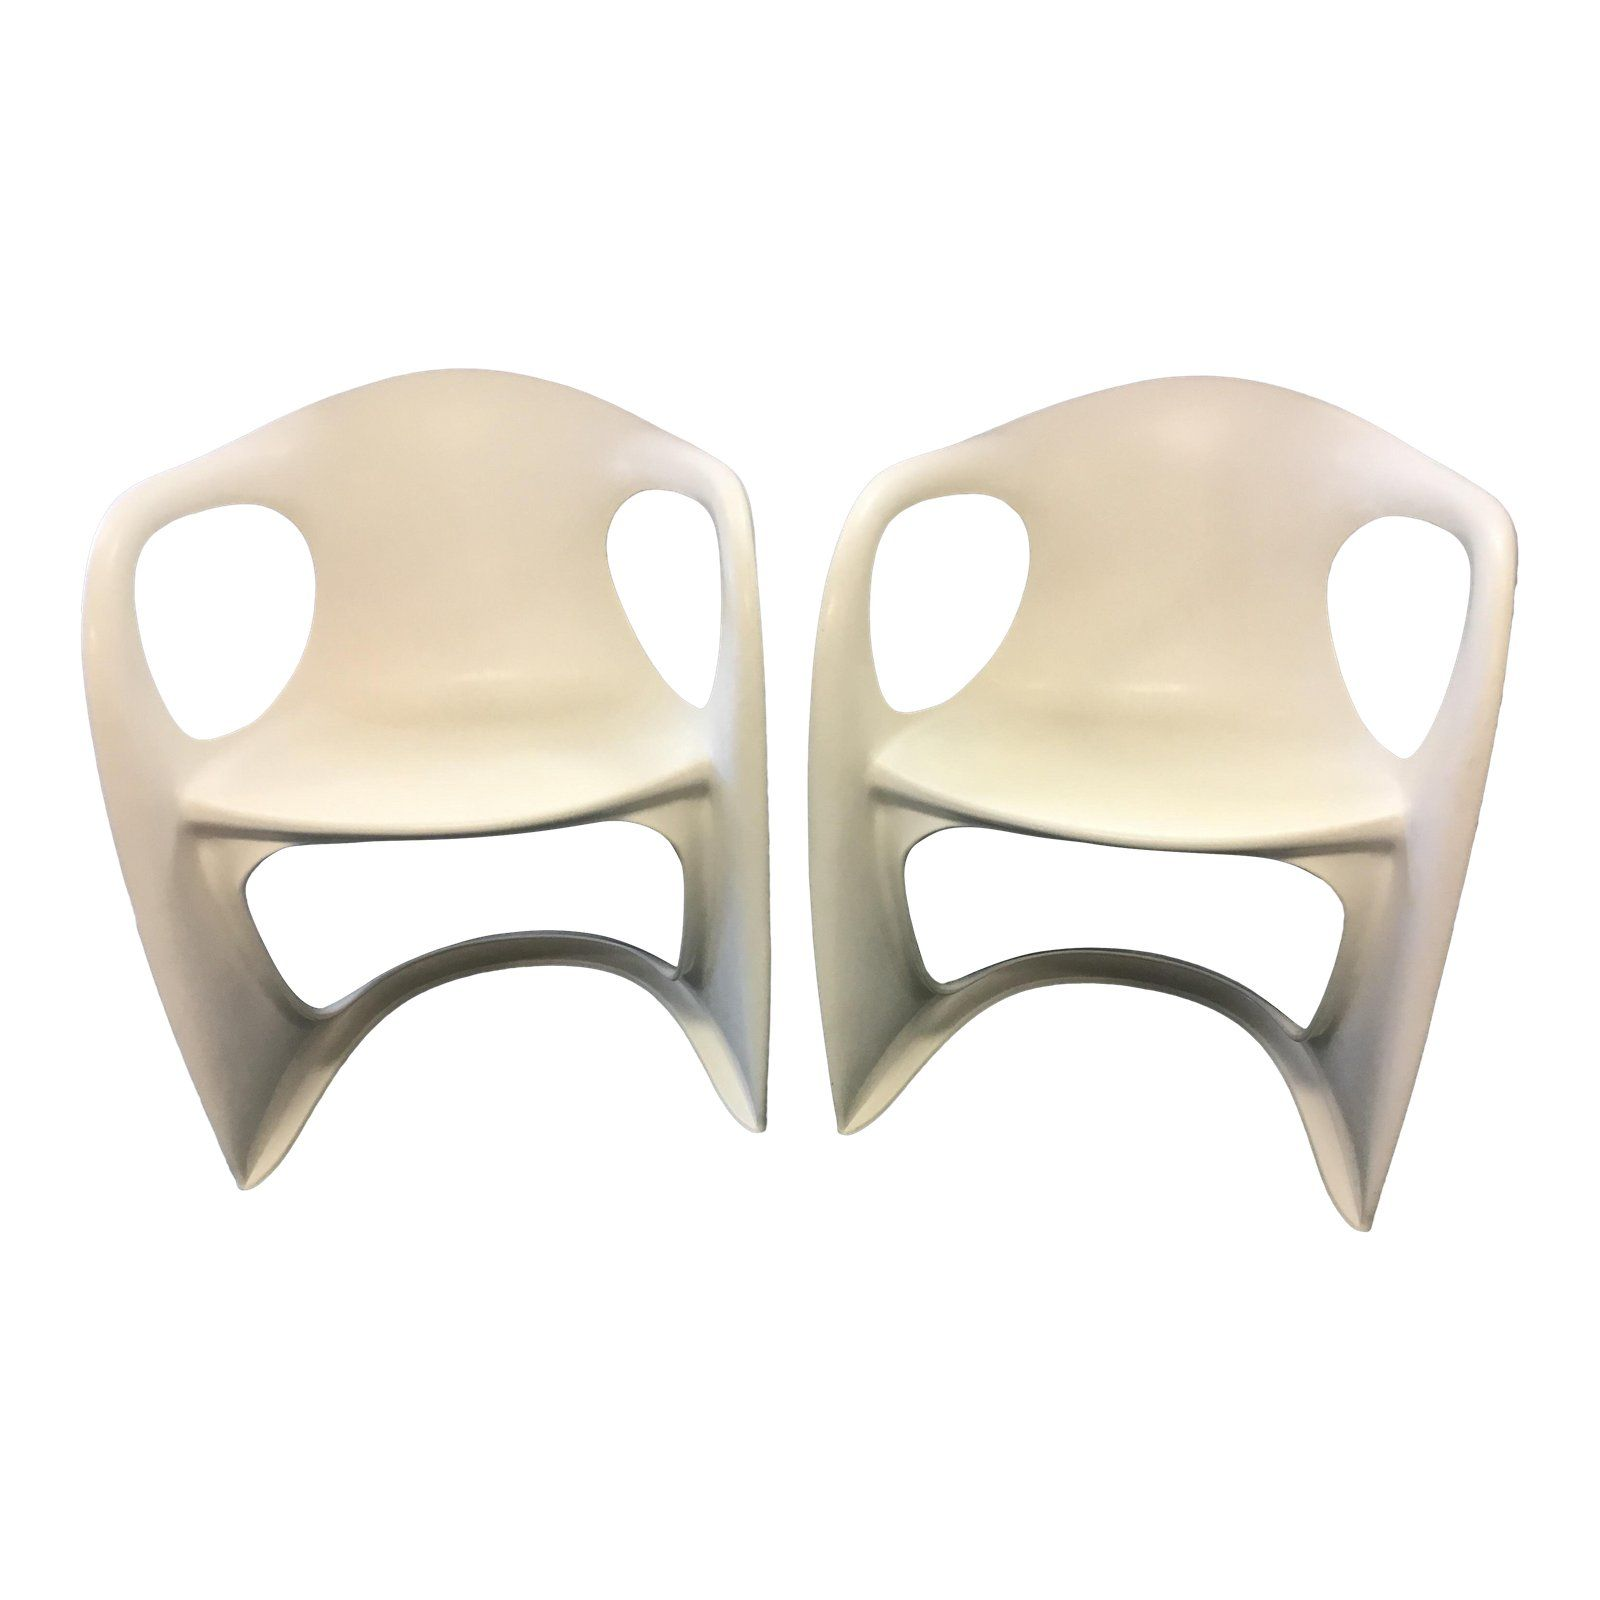 Vintage Mid Century Plastic Chairs A Pair Plastic Chair Chair Mid Century Chair